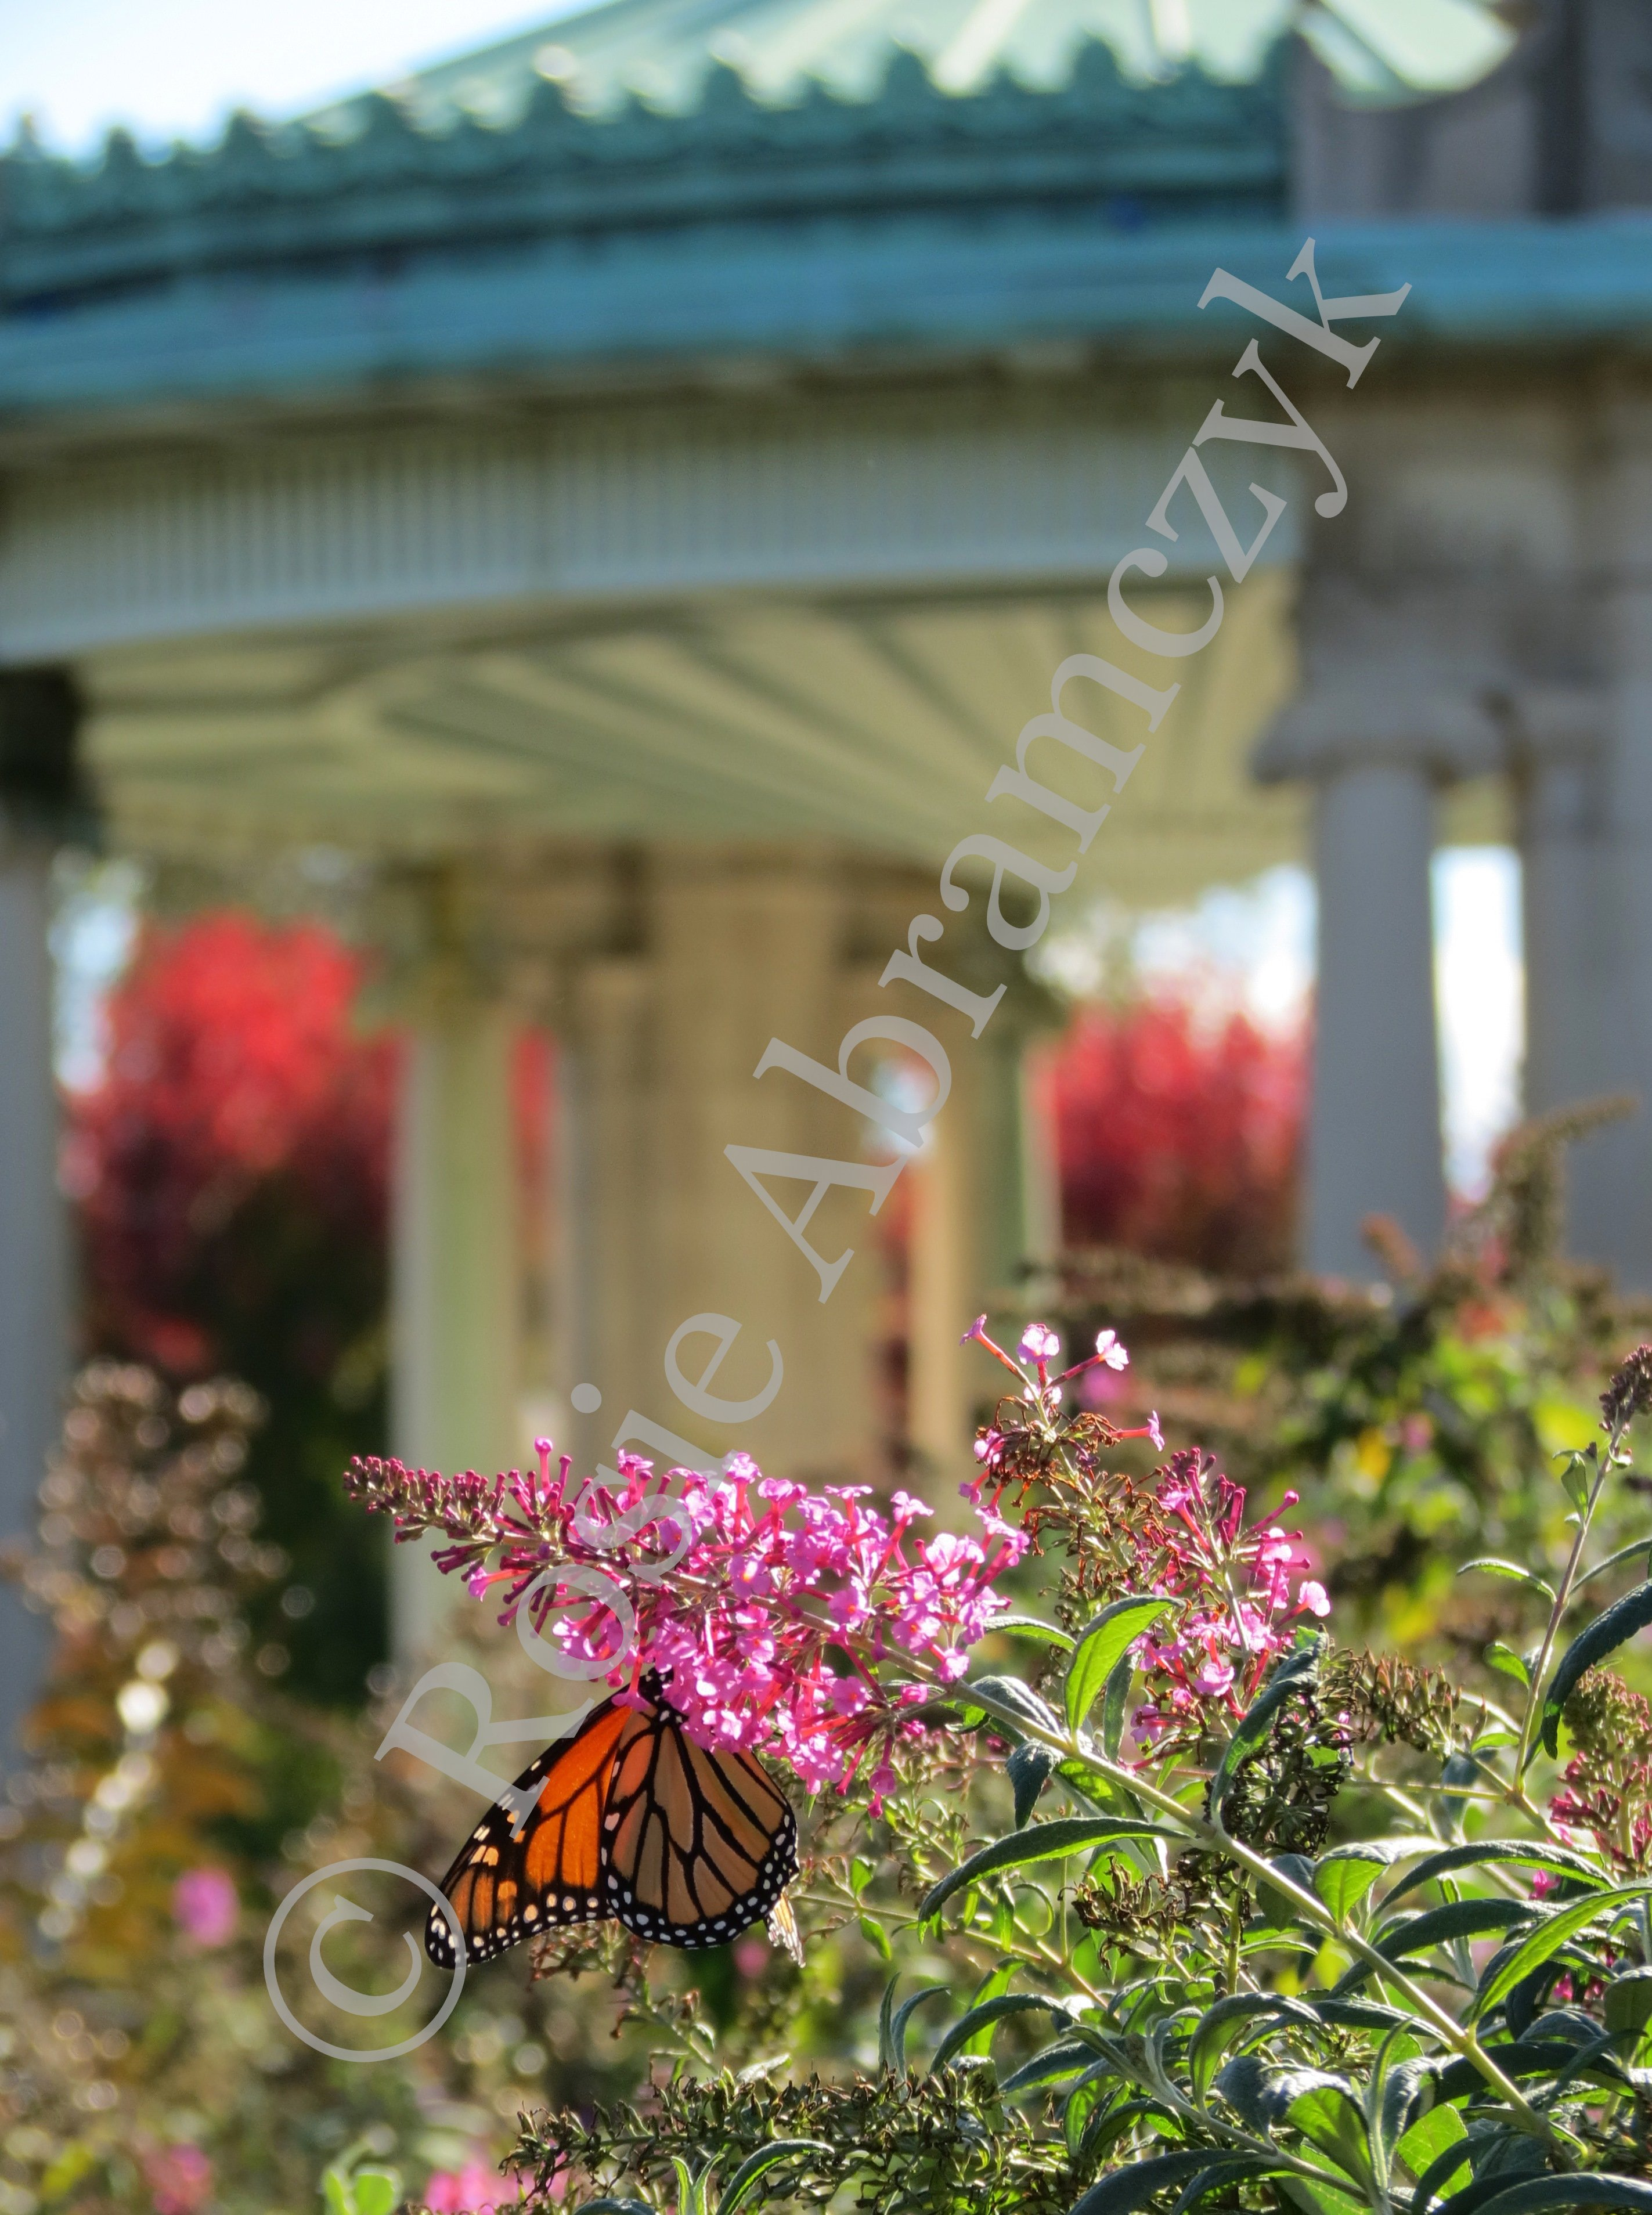 Butterfly at the Nathan Frank Bandstand Near the Muny, Rosie Abramczyk, 2013